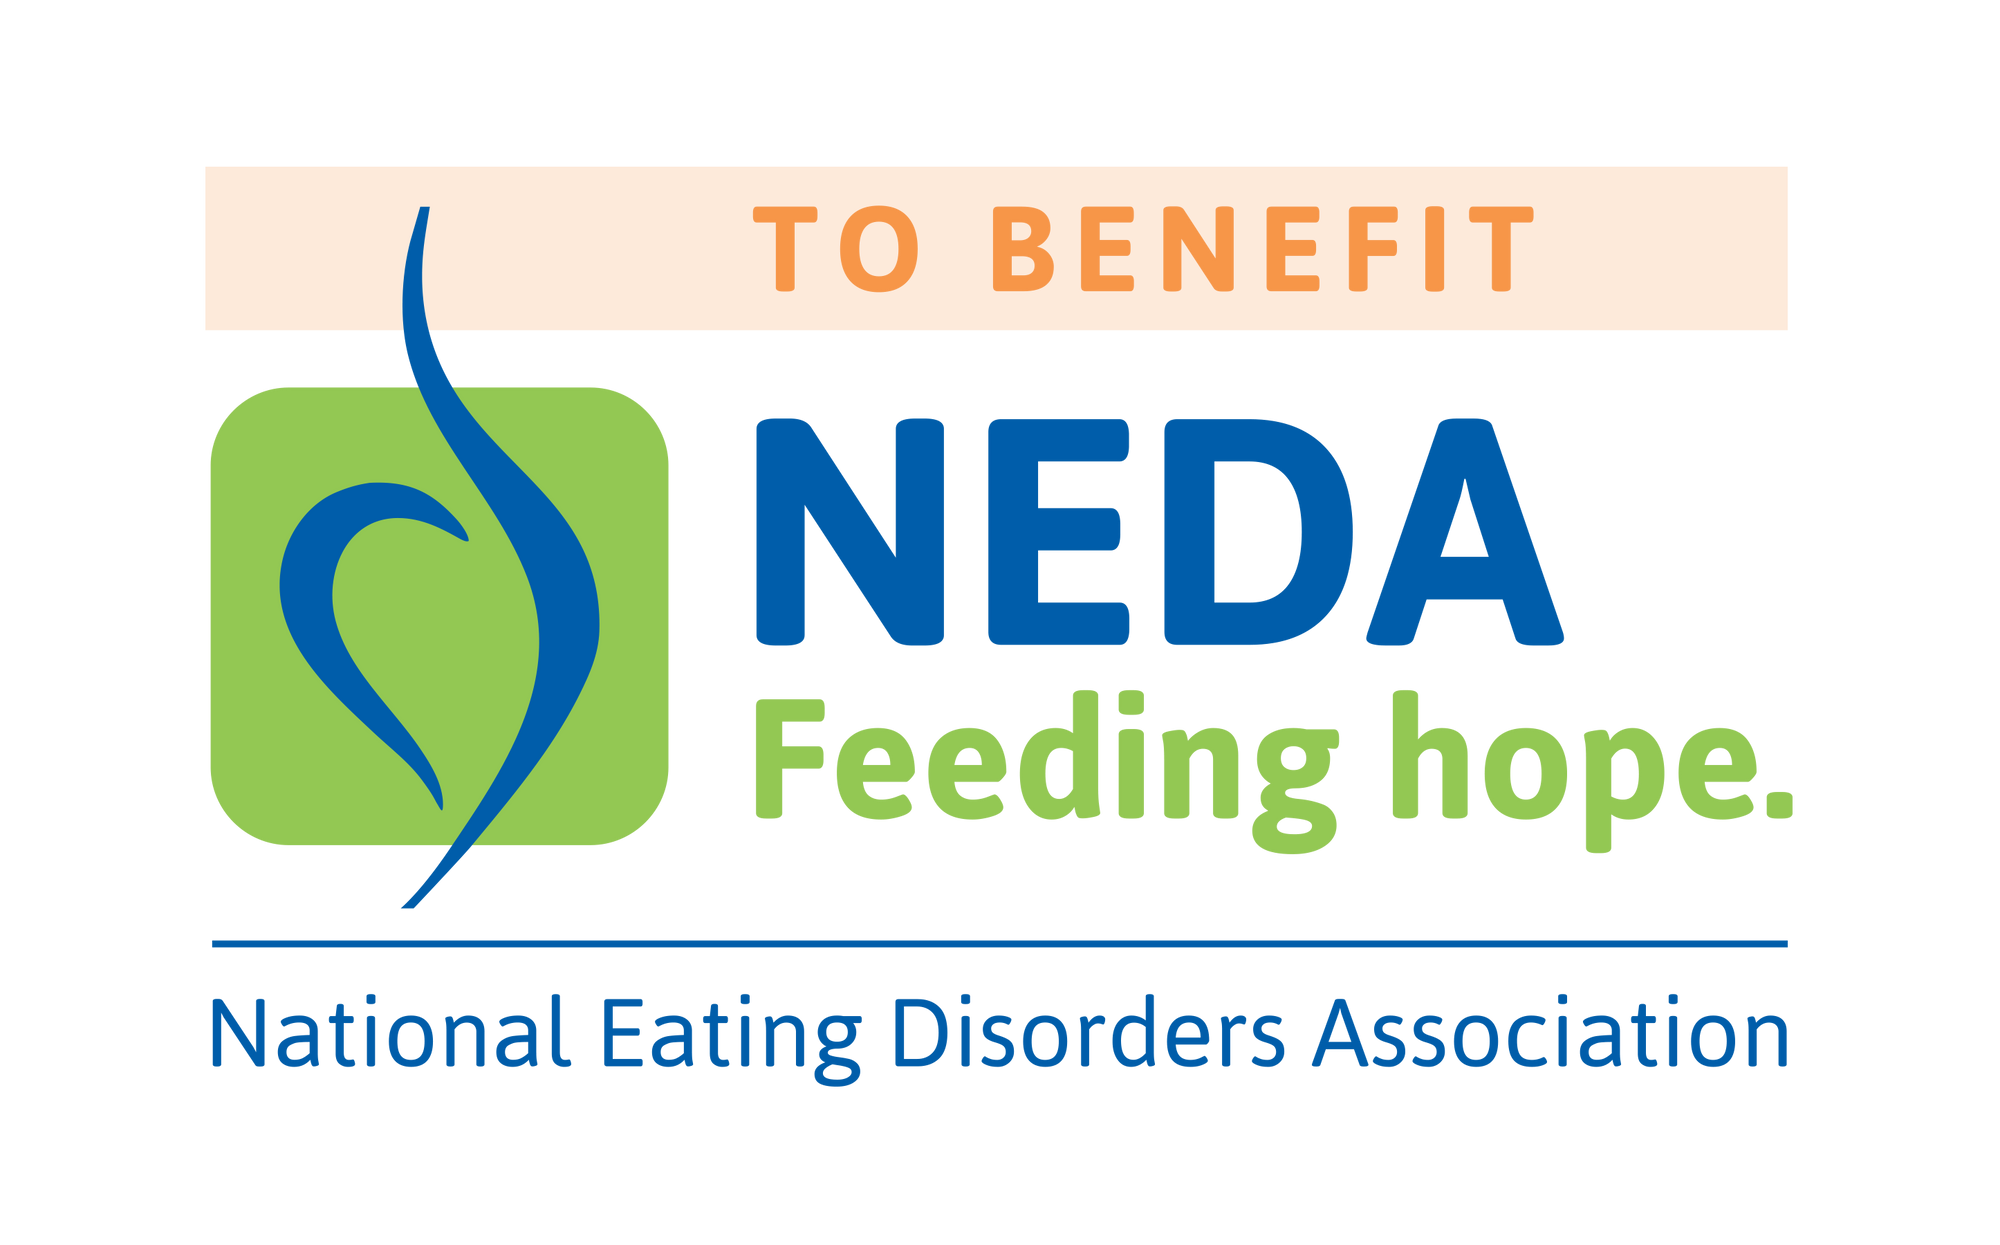 Benefitting the National Eating Disorders Association